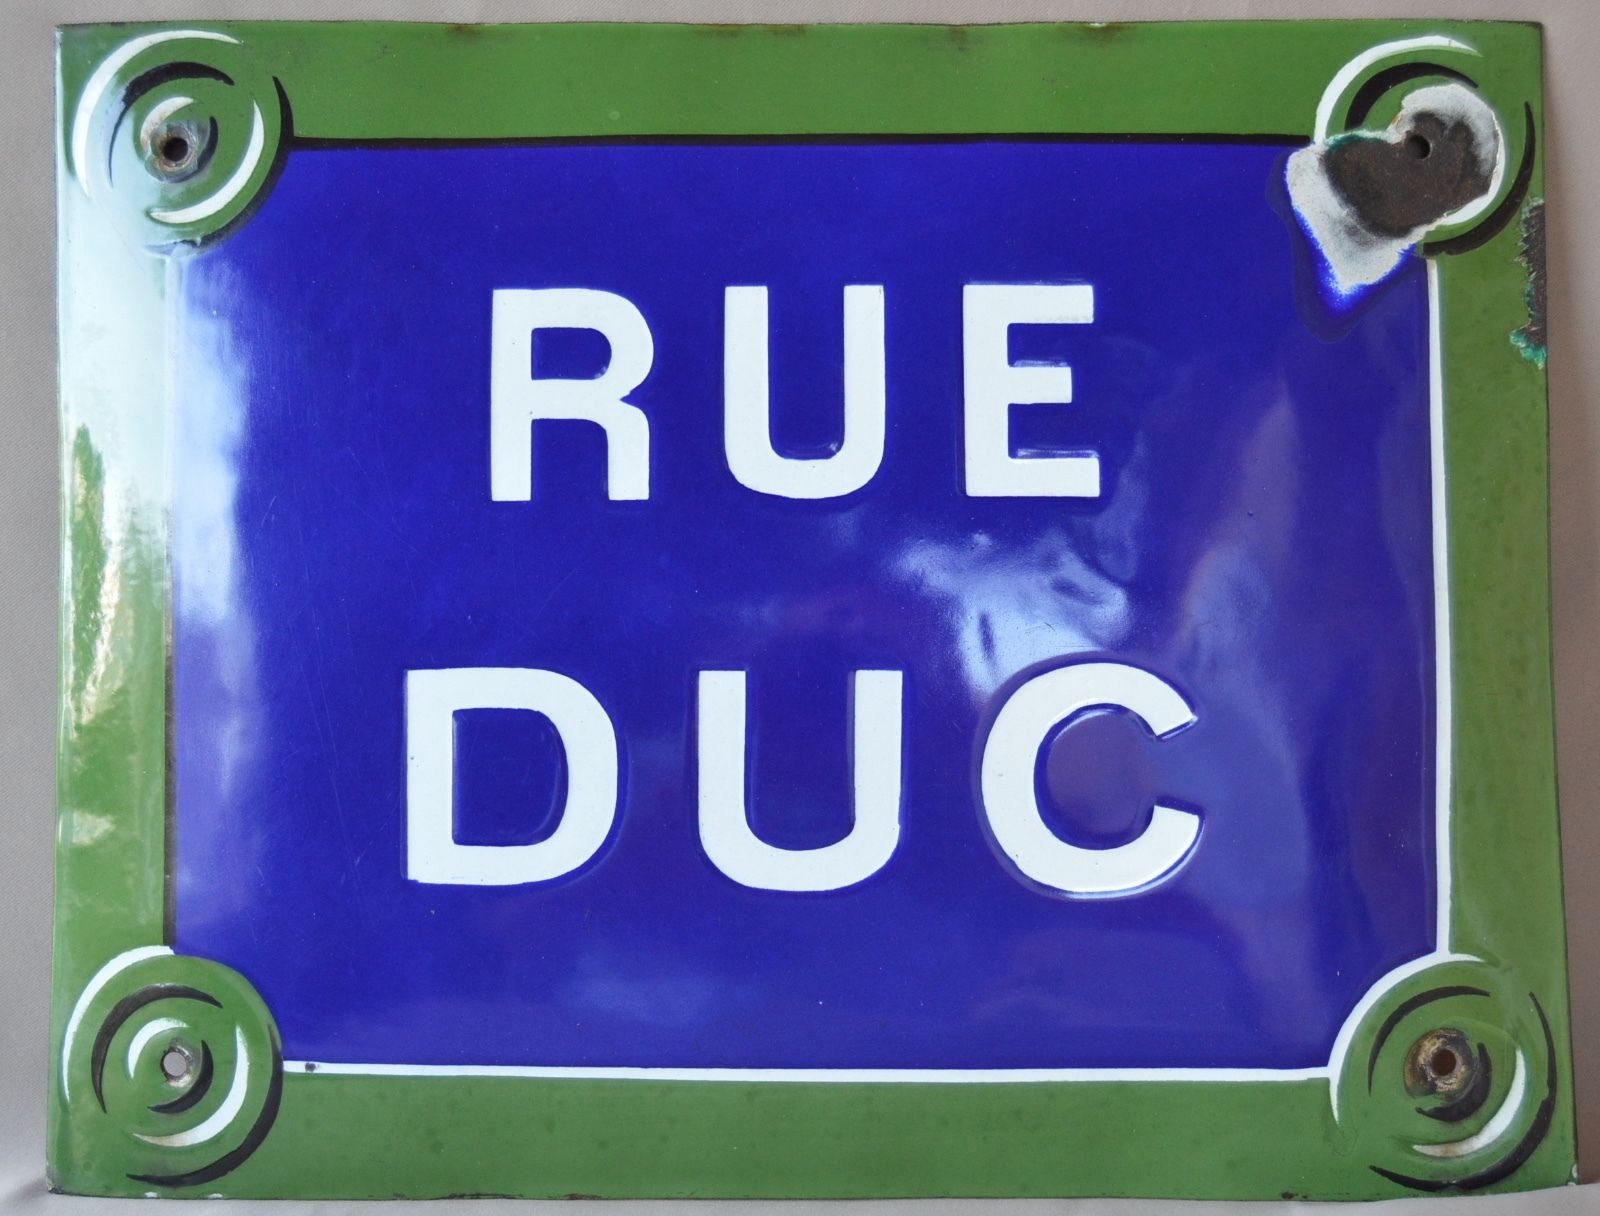 French Antique Blue & Green Enamel Convex Street Road Sign Plaque - Duc Duke Street - French Street Design Rue Duc